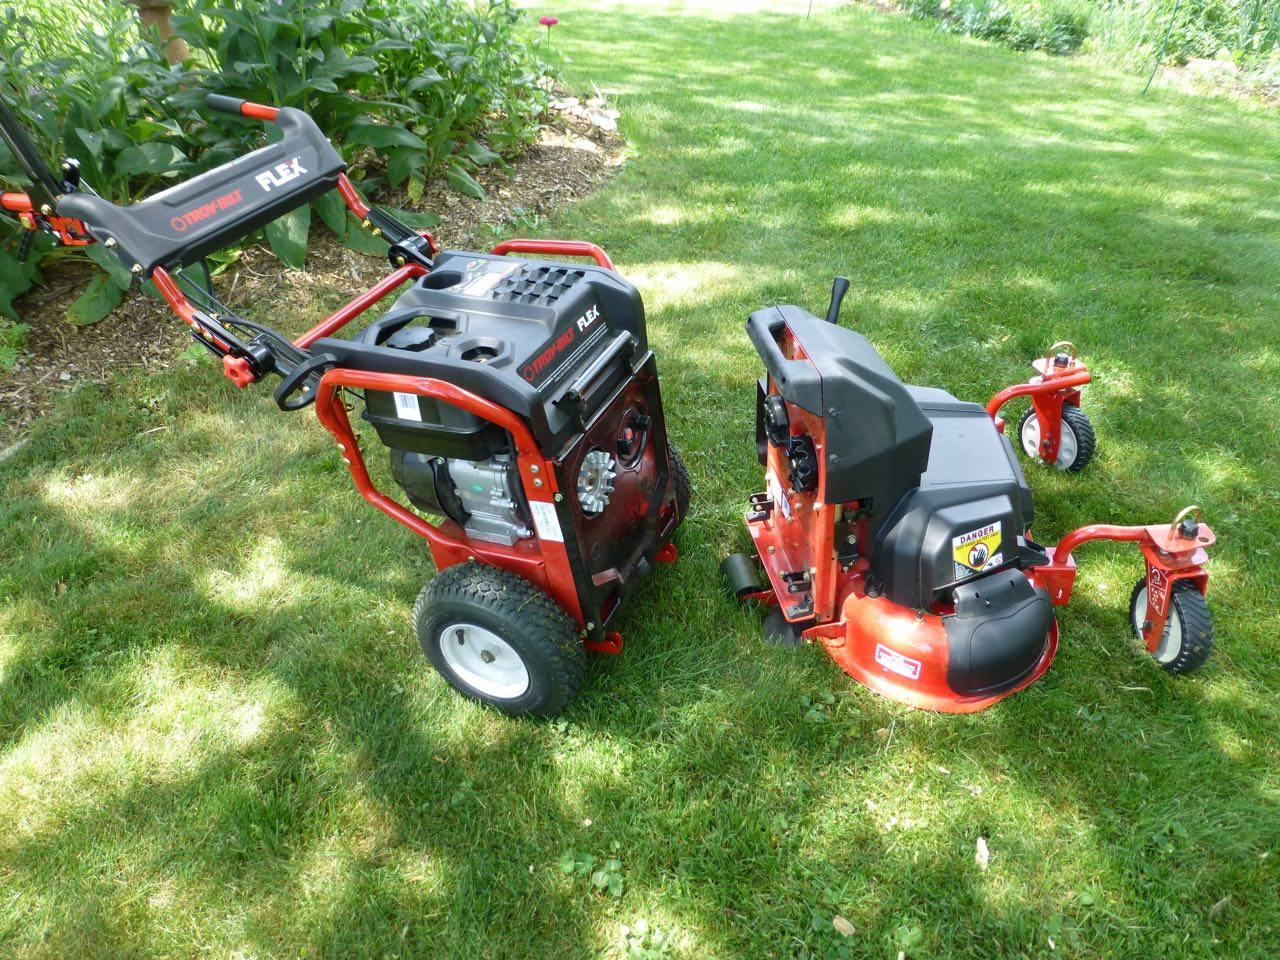 At Home With Flex Troy Bilt S New Yard Care System